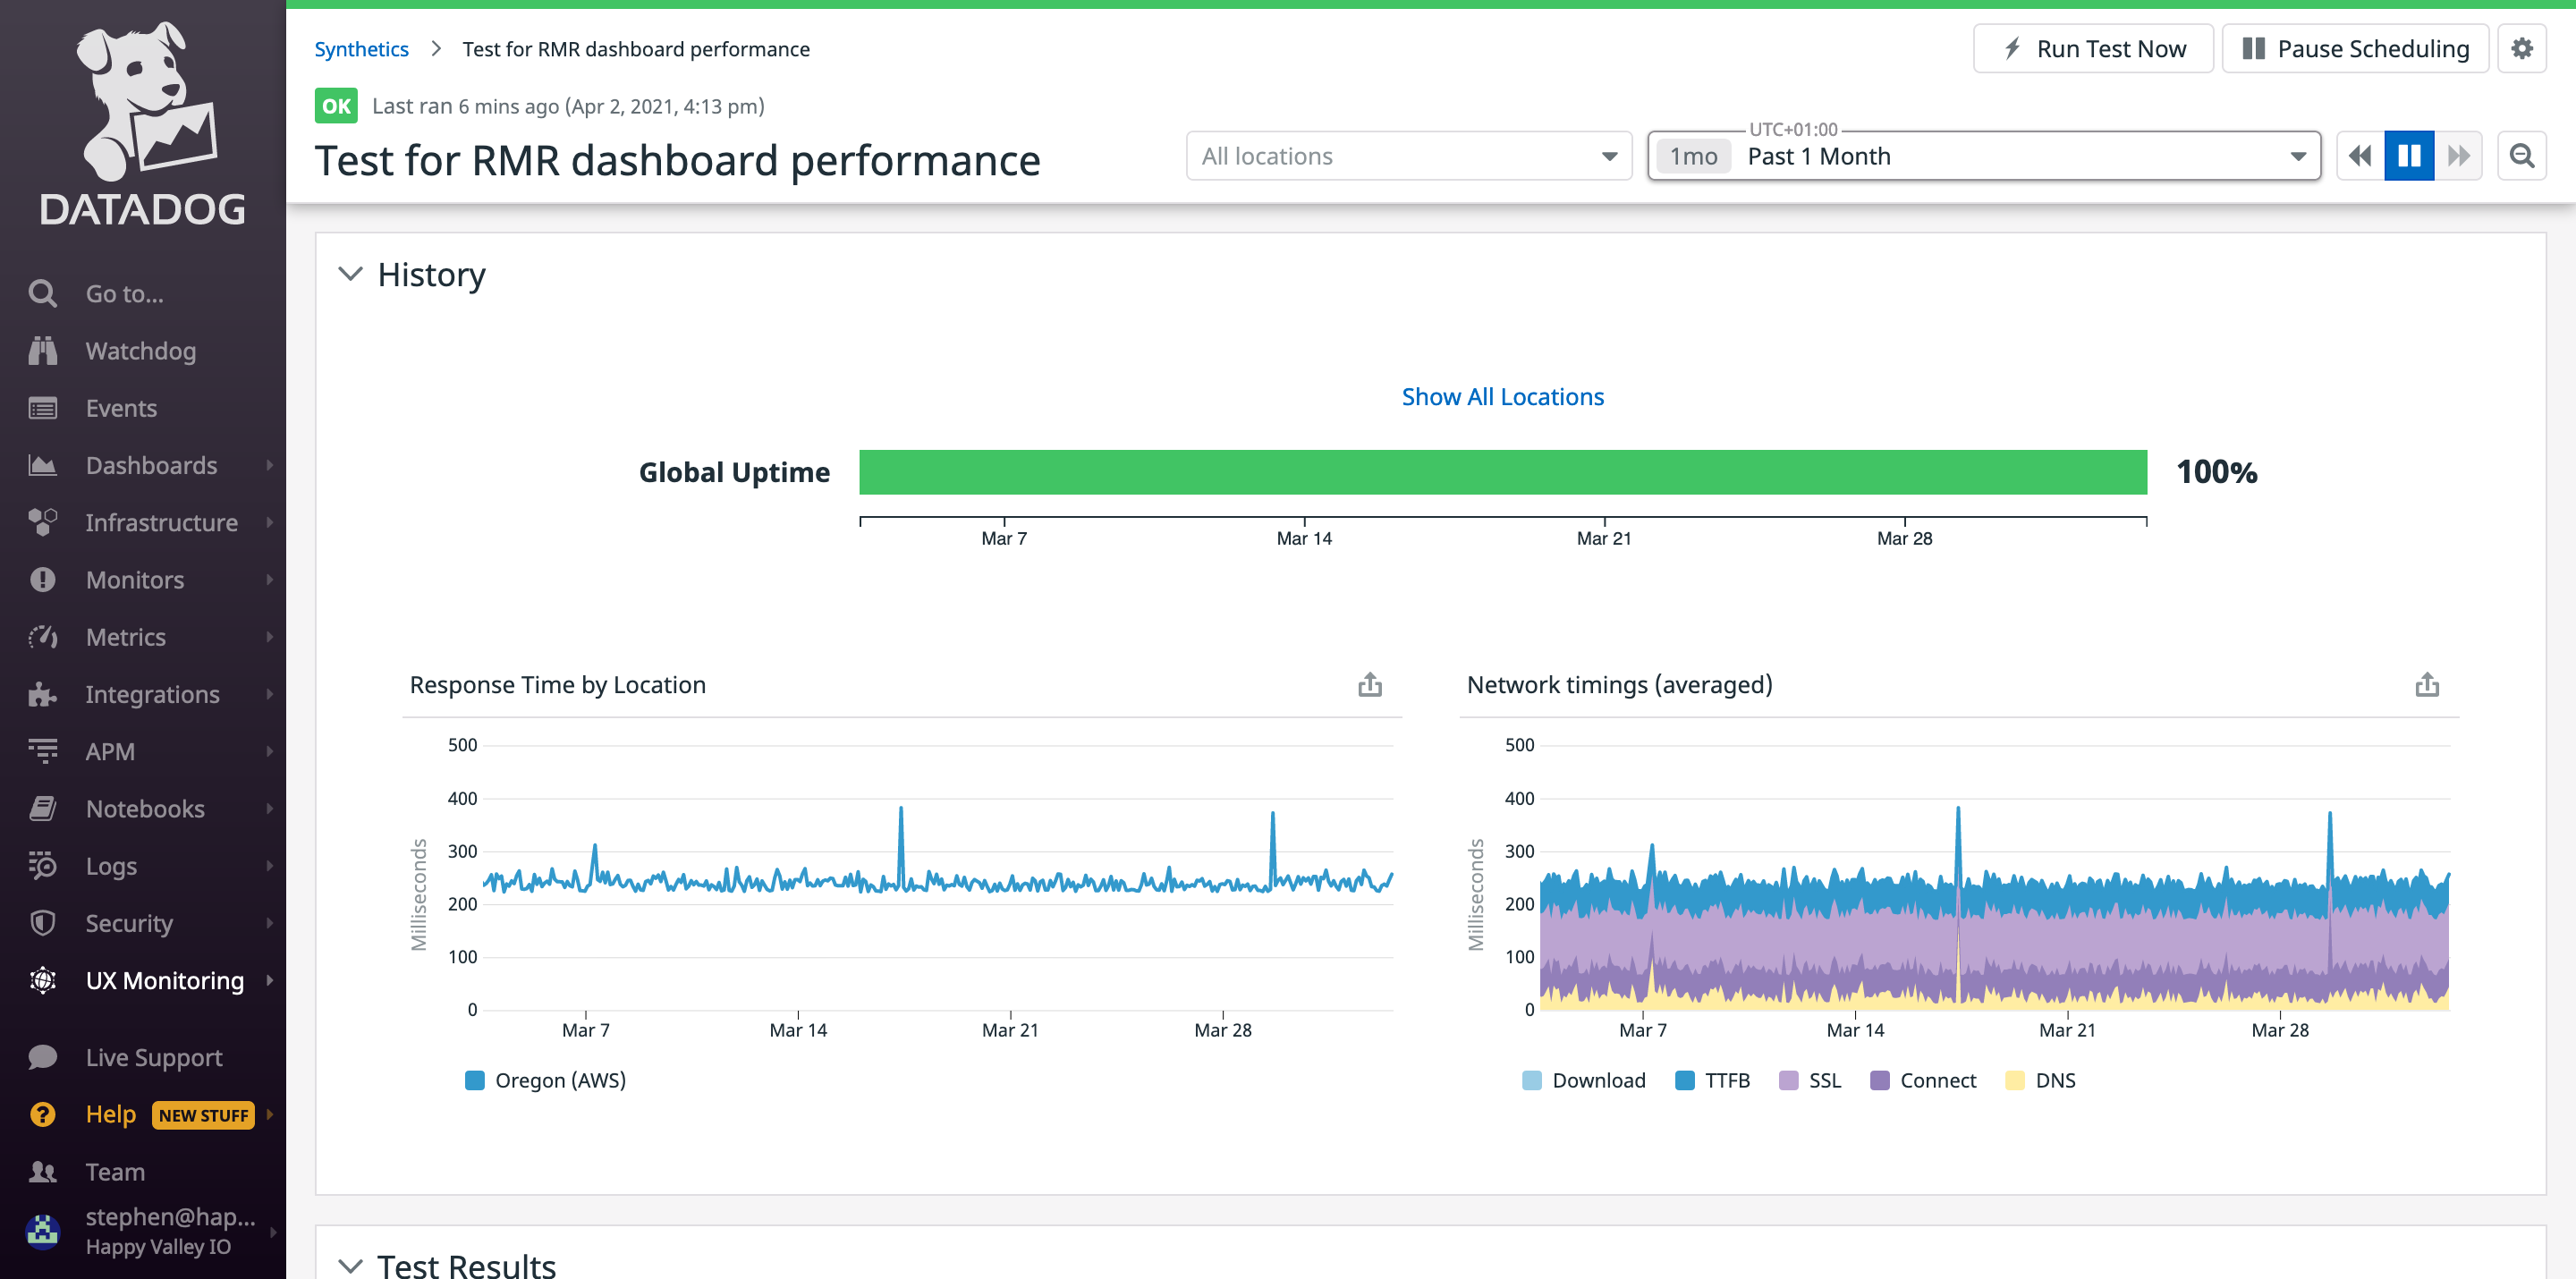 RMR's uptime and latency in the last month